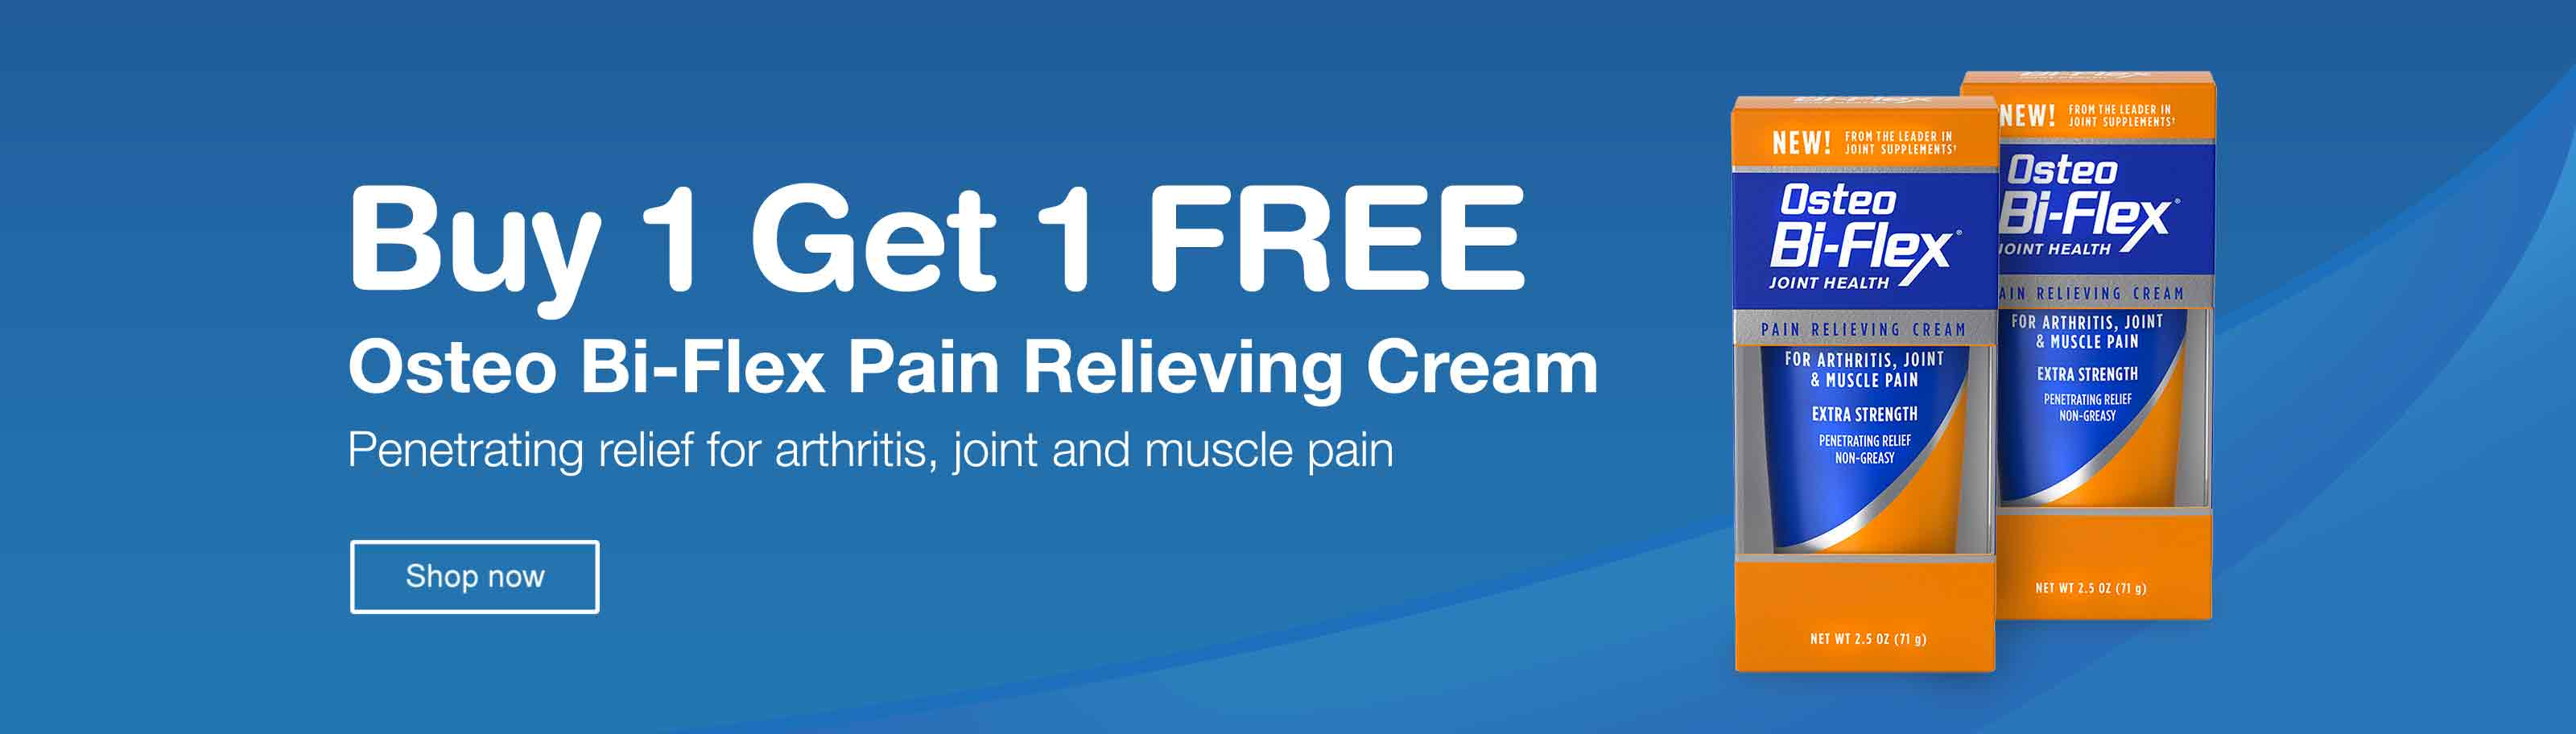 Buy 1 Get 1 FREE Osteo Bi-Flex Pain Relieving Cream. Penetrating relief for arthritis, joint and muscle pain. Shop now.